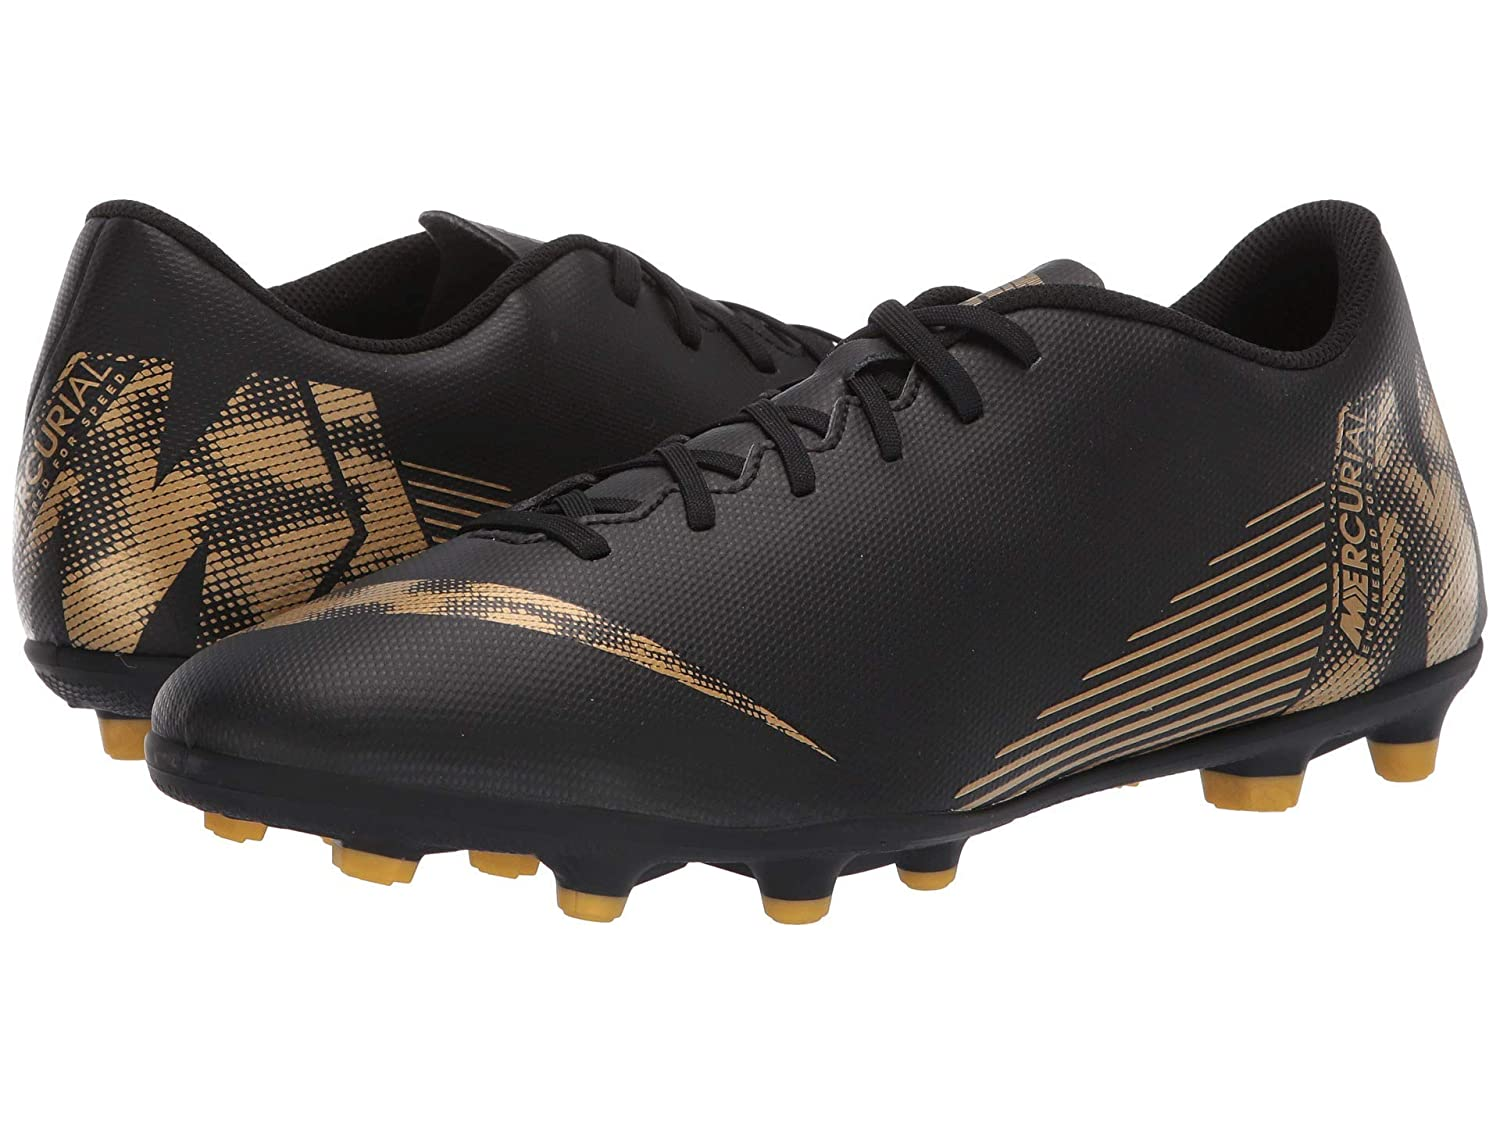 大人気の [ナイキ] MG メンズランニングシューズスニーカー靴 Vapor Vivid 12 Club MG Gold [並行輸入品] B07P8SWVD4 Black/Metallic Vivid Gold 28.5 cm D 28.5 cm D|Black/Metallic Vivid Gold, HiMeHouse:5ddfba0c --- svecha37.ru